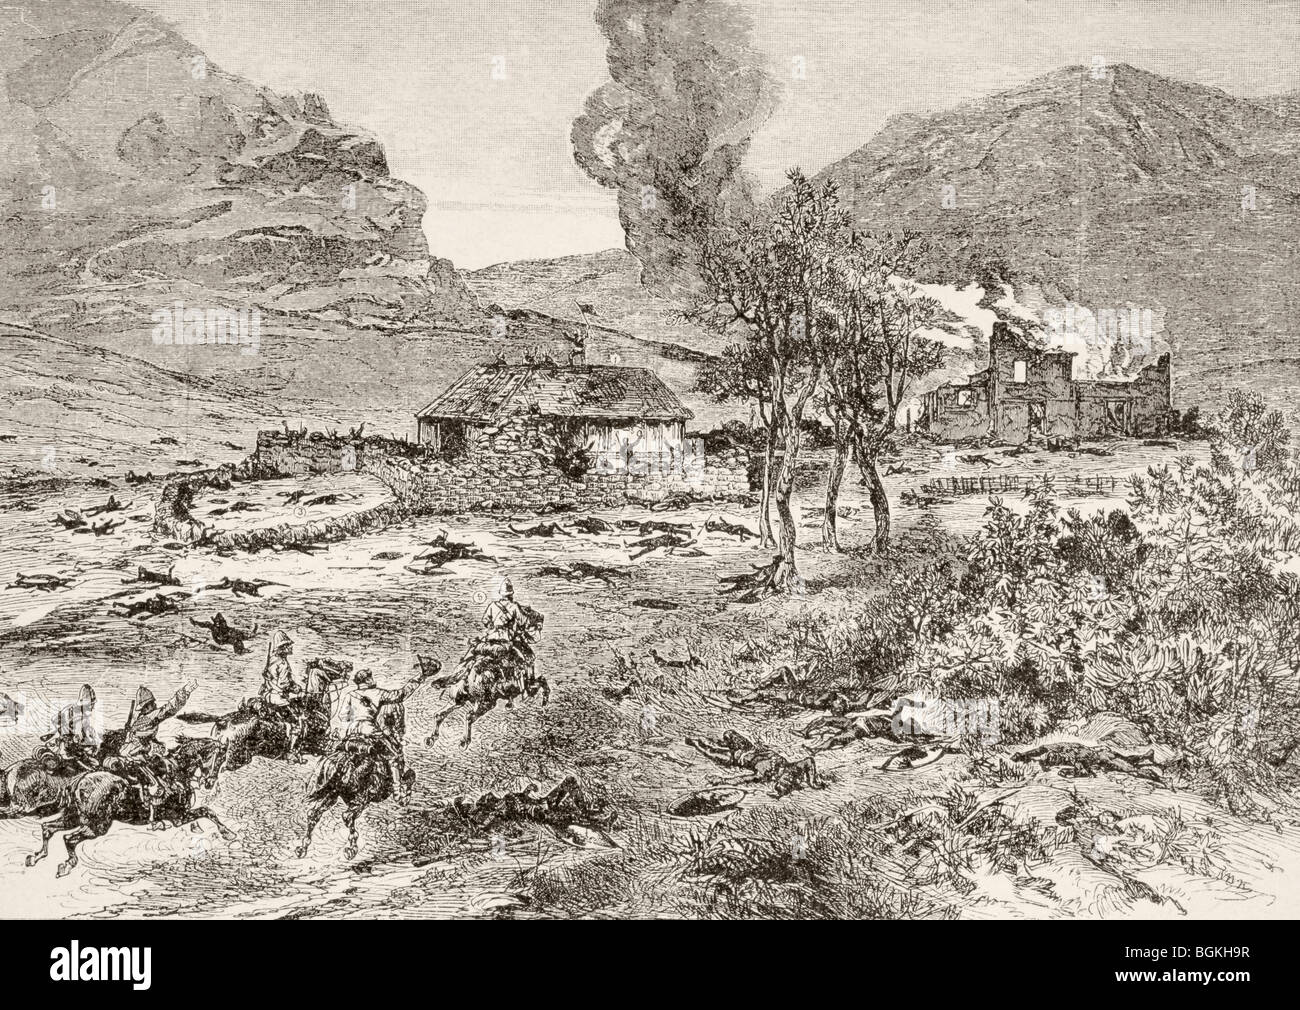 The British relief column arrives at Rorke's Drift, Kwa-Zulu-Natal province, South Africa, after the battle. - Stock Image